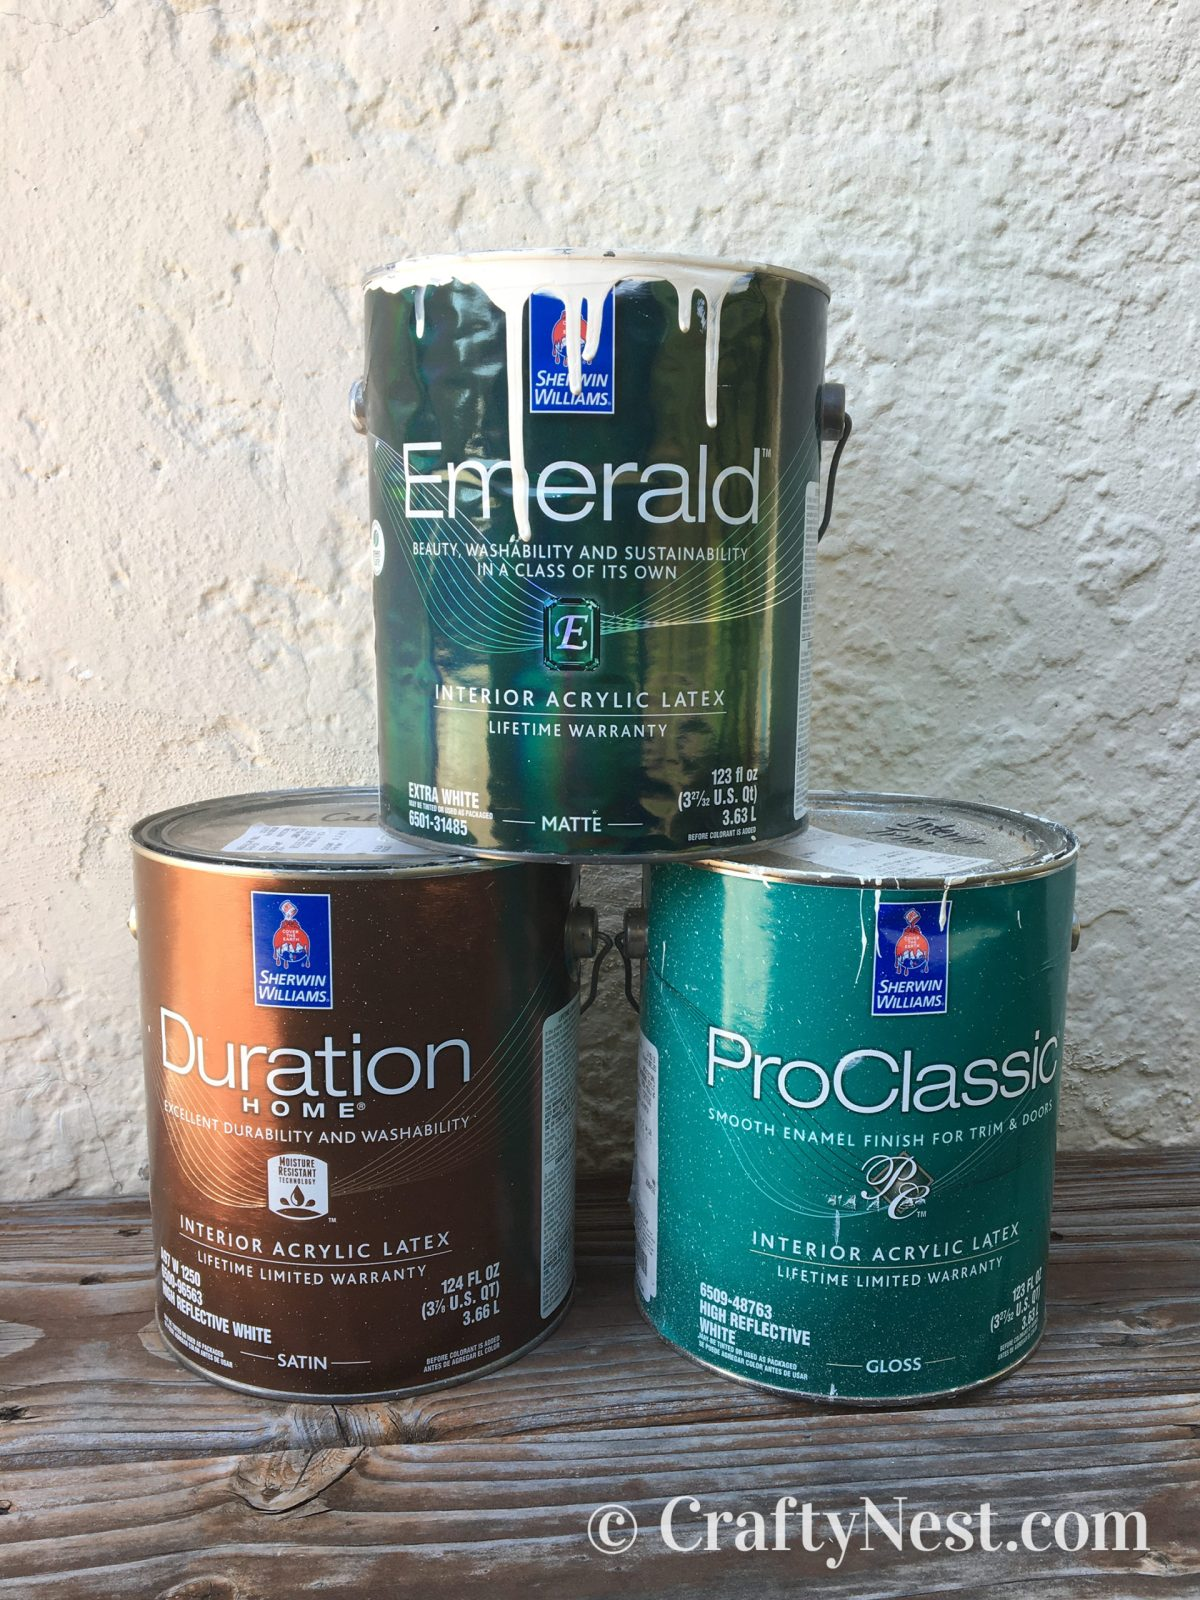 Sherwin-Williams paint cans, photo